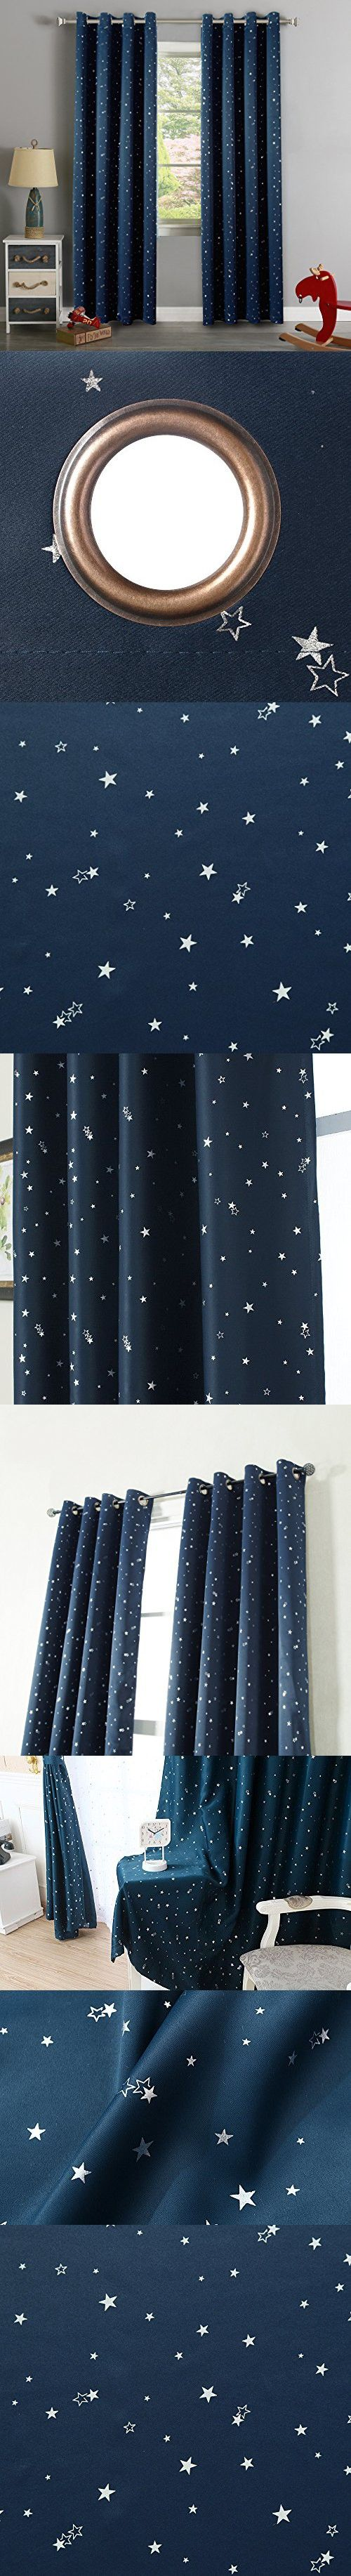 H.Versailtex Cute Star War Pattern Thermal Insulated Blackout Kids Room Curtains with Antique Grommet Top (1 panel),52 inch Width by 84 inch Length